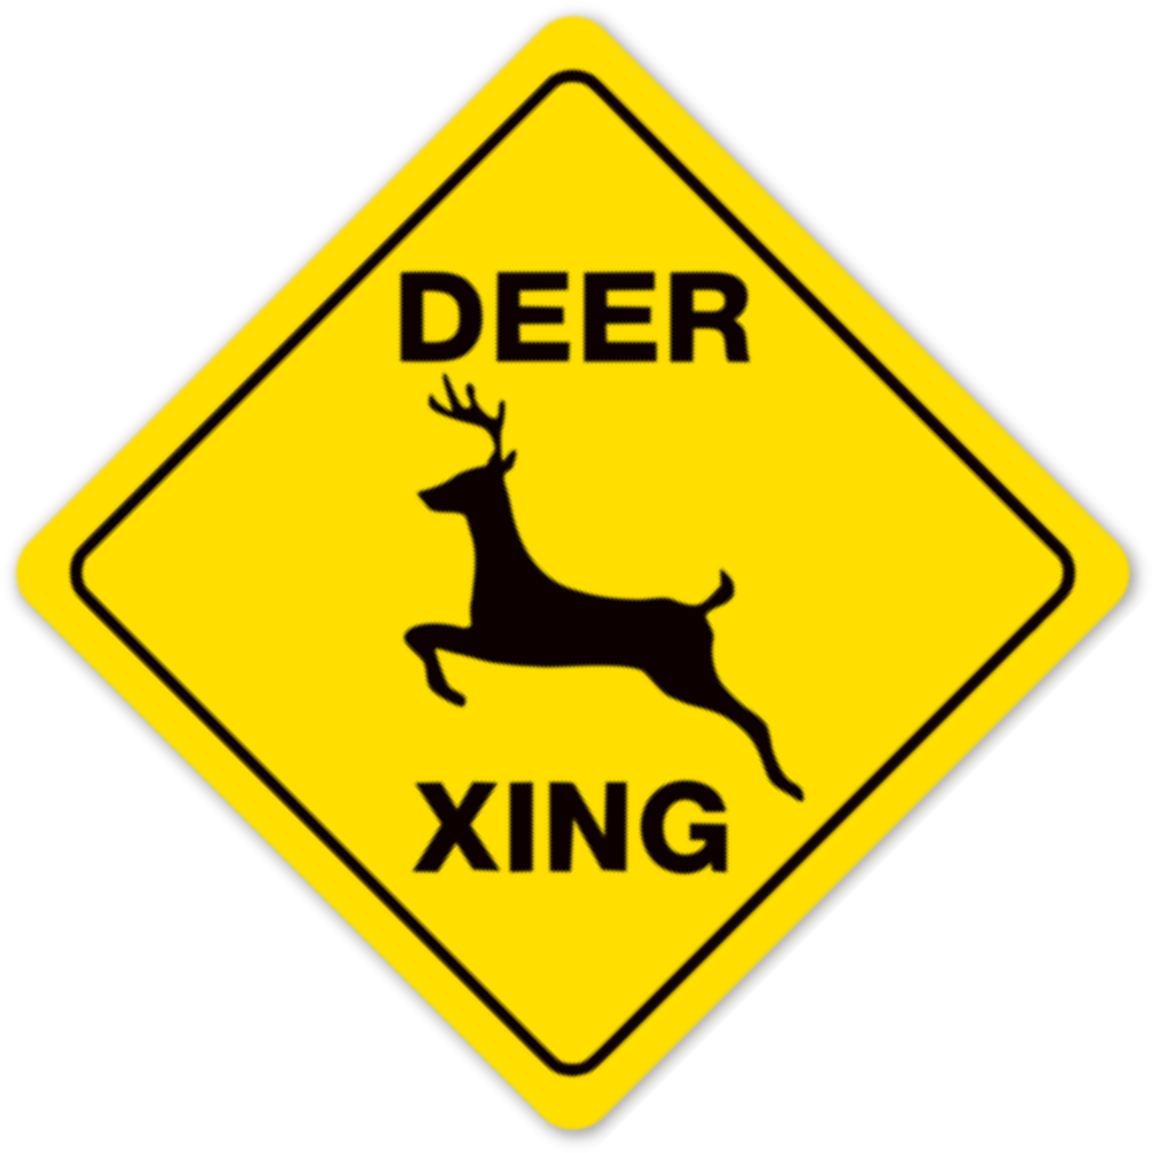 Deer crossing sign clipart svg black and white Ophelion Clipart - Full Size Clipart (#3149474) - PinClipart svg black and white